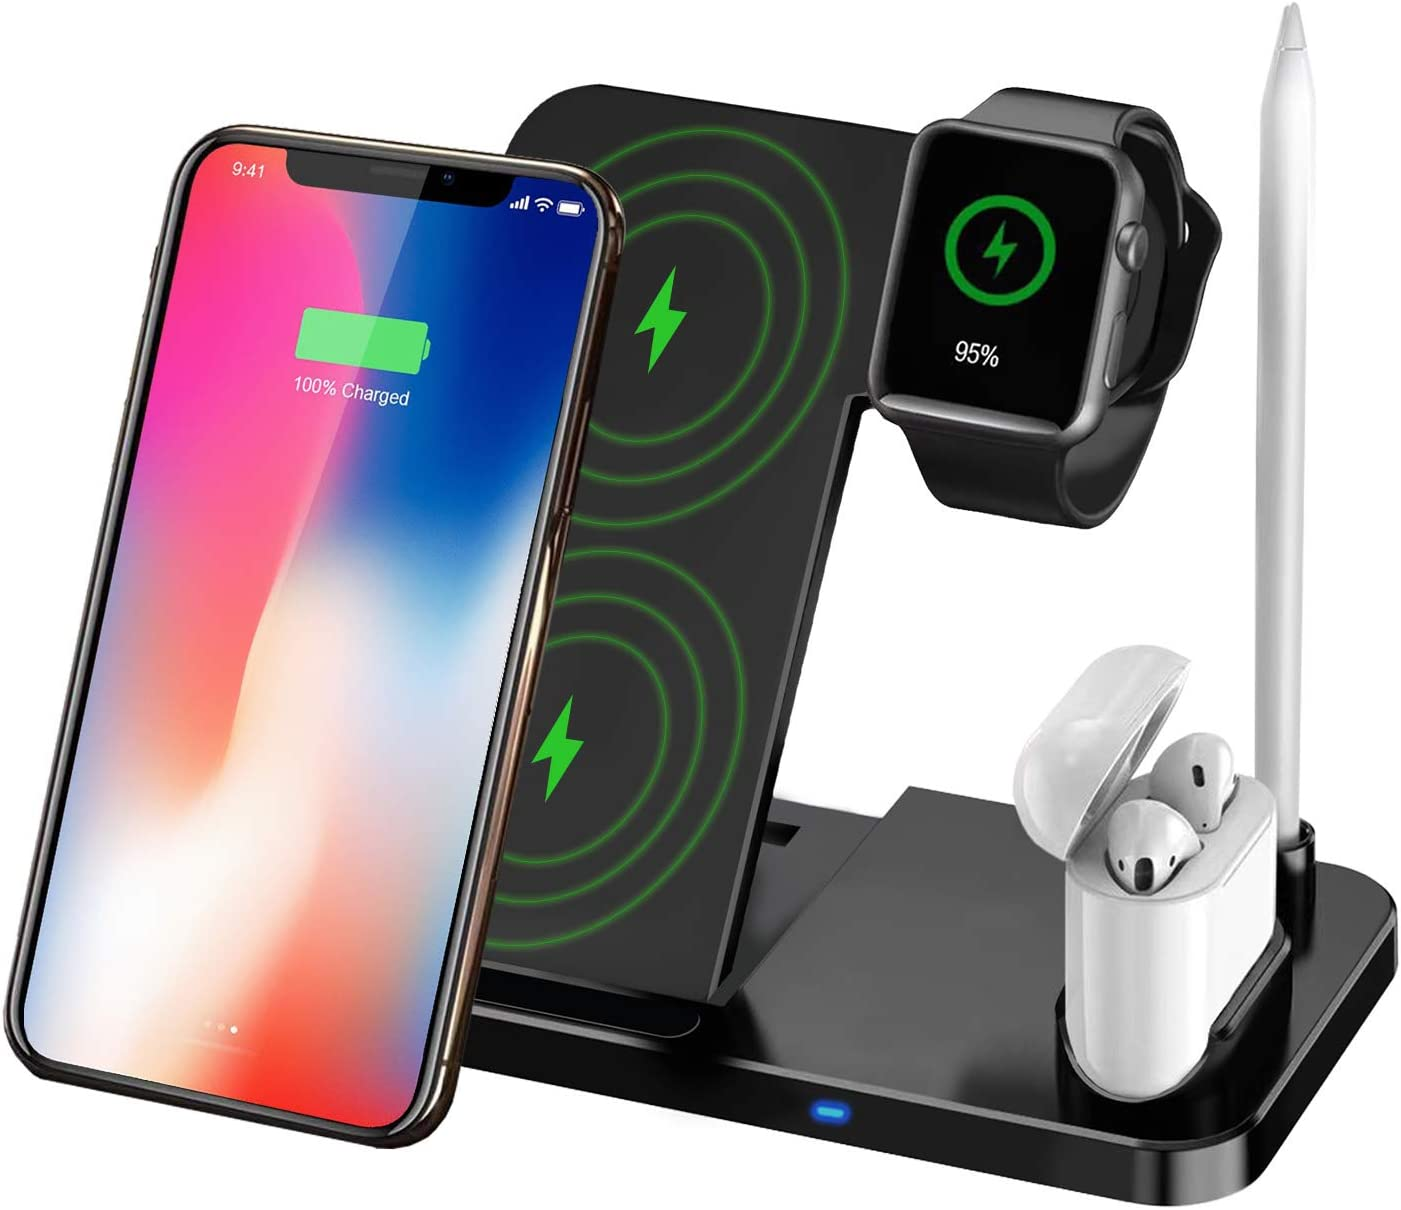 TaoHorse Wireless Charger, 4 in 1 Wireless Charging Station for iPhone 12/11/11 Pro Max/XR/XS Max/Xs/X, Wireless Charging Pad with iWatch Stand Pencil Holder for AirPods/AirPods Pro, iWatch 5/4/3/2/1